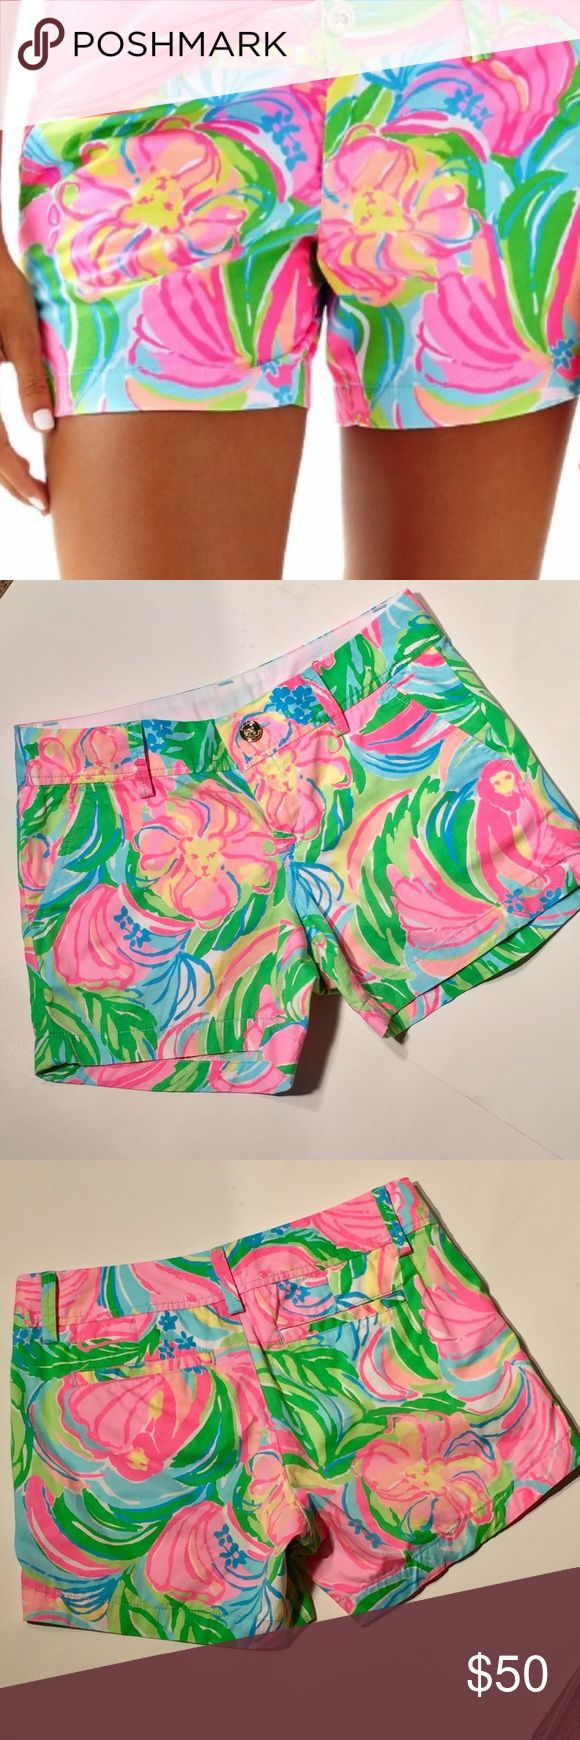 """Lilly pulitzer Callahan shorts Callahan shorts has flawless fit, The unique beach Twill fabric observes color and displays print beautifully. 5 inch inseam zip fly short with center front button closure. Belt loops slant front pockets and back welt pocket.                                         print in Multi """"So-A-Peeling"""" size 2 EUC Lilly Pulitzer Shorts"""